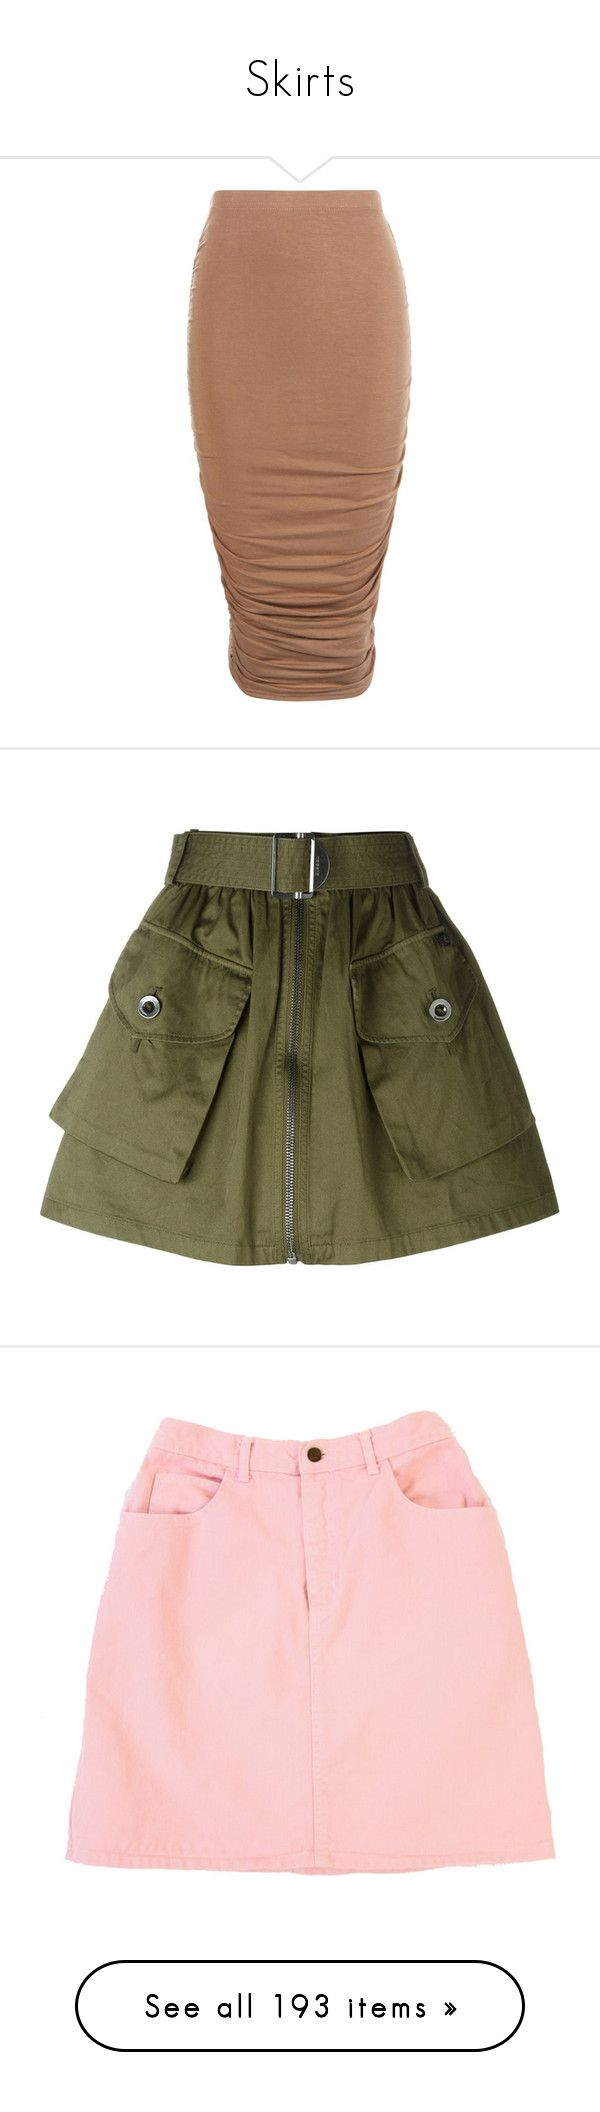 """""""Skirts"""" by xovml ❤ liked on Polyvore featuring skirts, bottoms, tube skirts, ruched skirt, midi tube skirt, high waisted midi skirt, ruched midi skirt, green, diesel skirts and green skirt"""